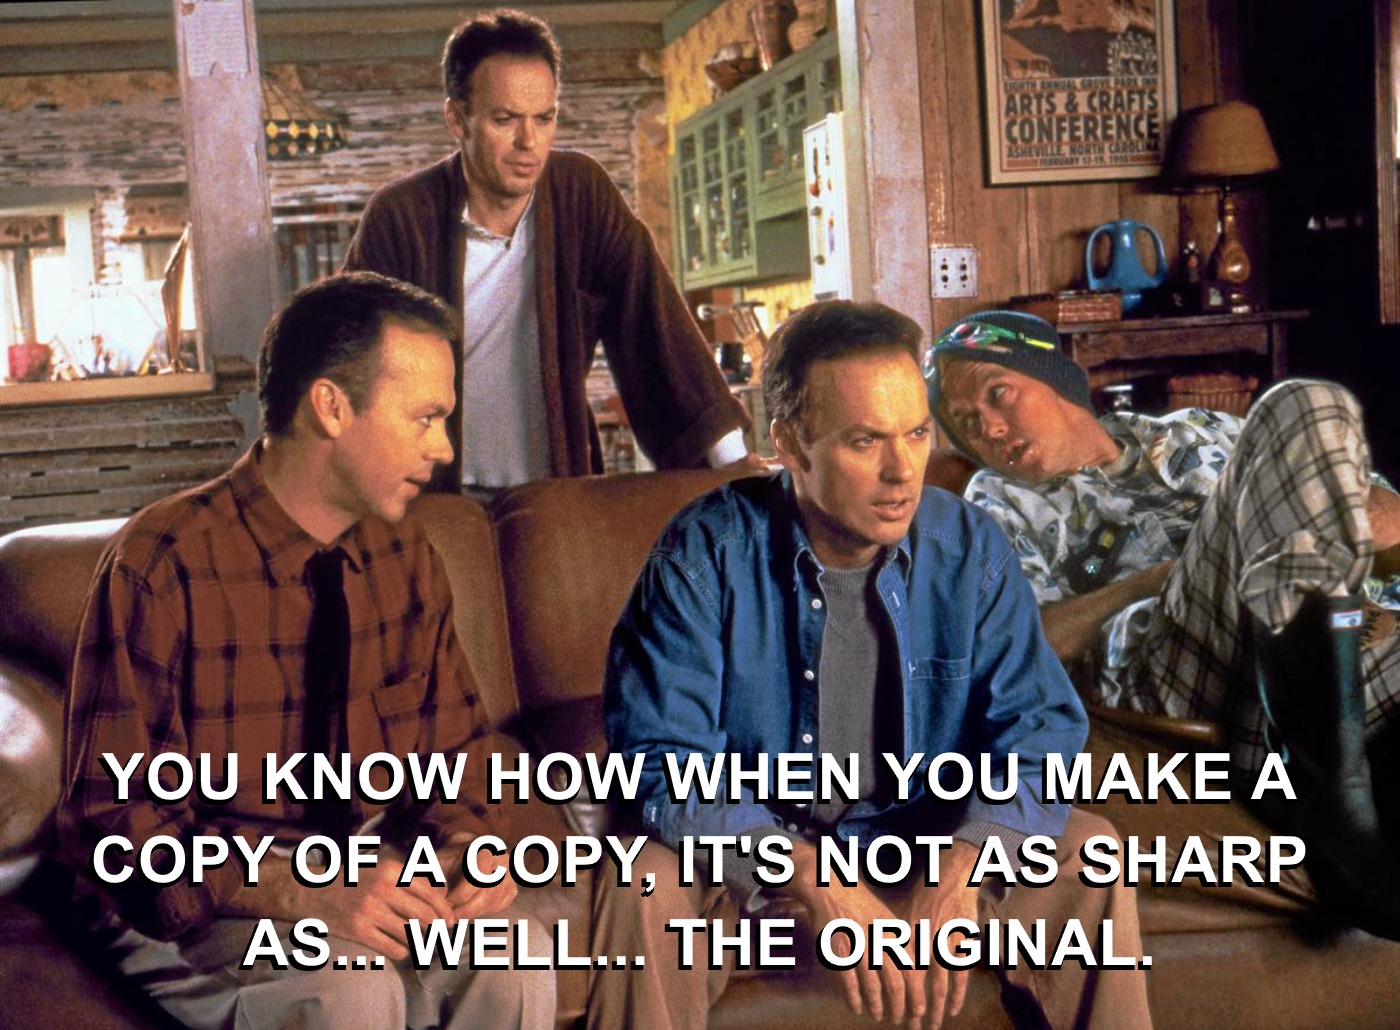 Many Michael Keaton's in Multiplicity movie: You know how when you make a copy of a copy it's not as sharp as... well... the original.